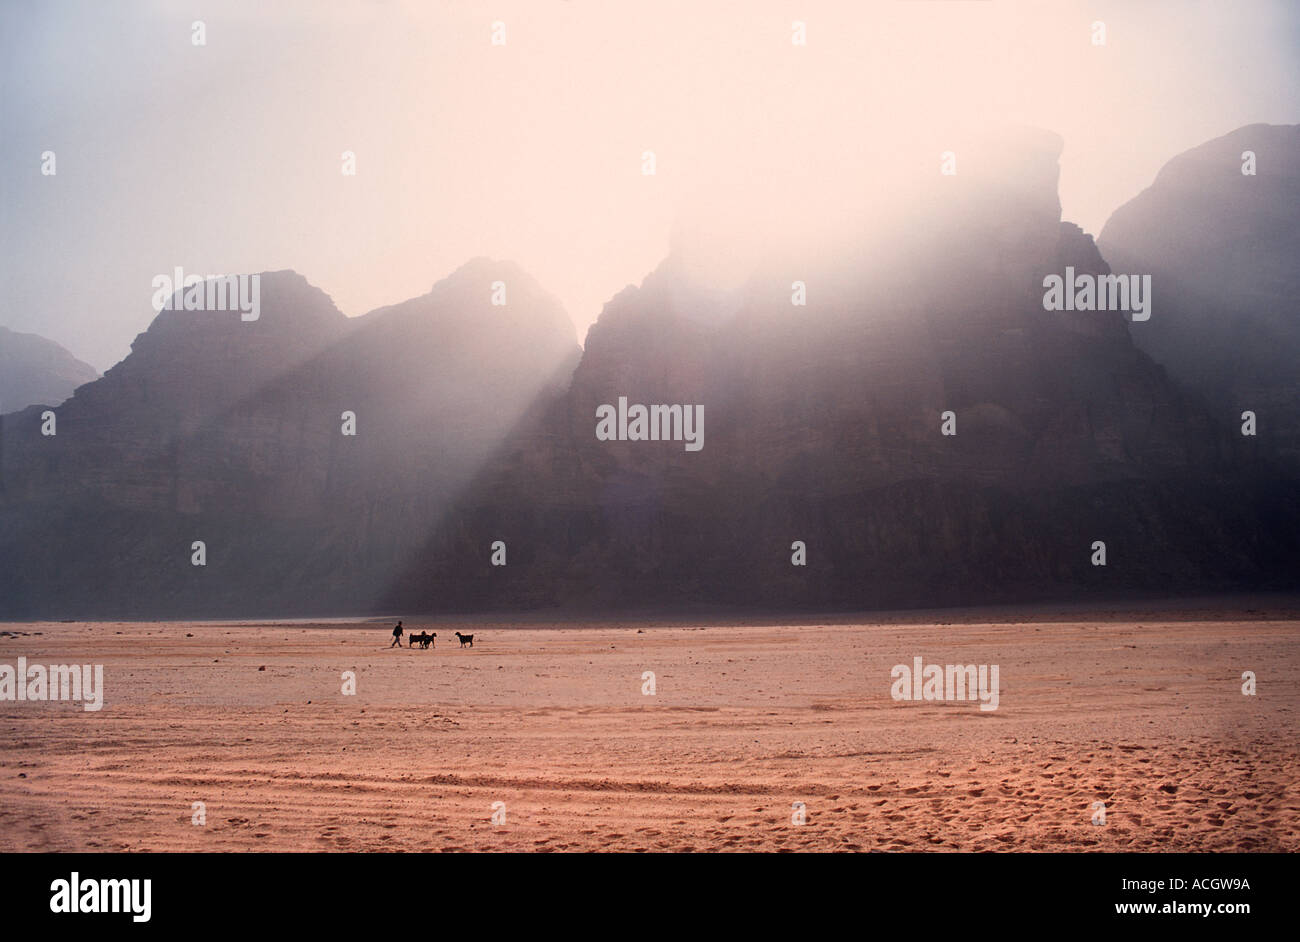 Red sand floor of the desert with rocky Jebels in the distance A boy herding goats in the foreground Wadi Rum Jordan - Stock Image